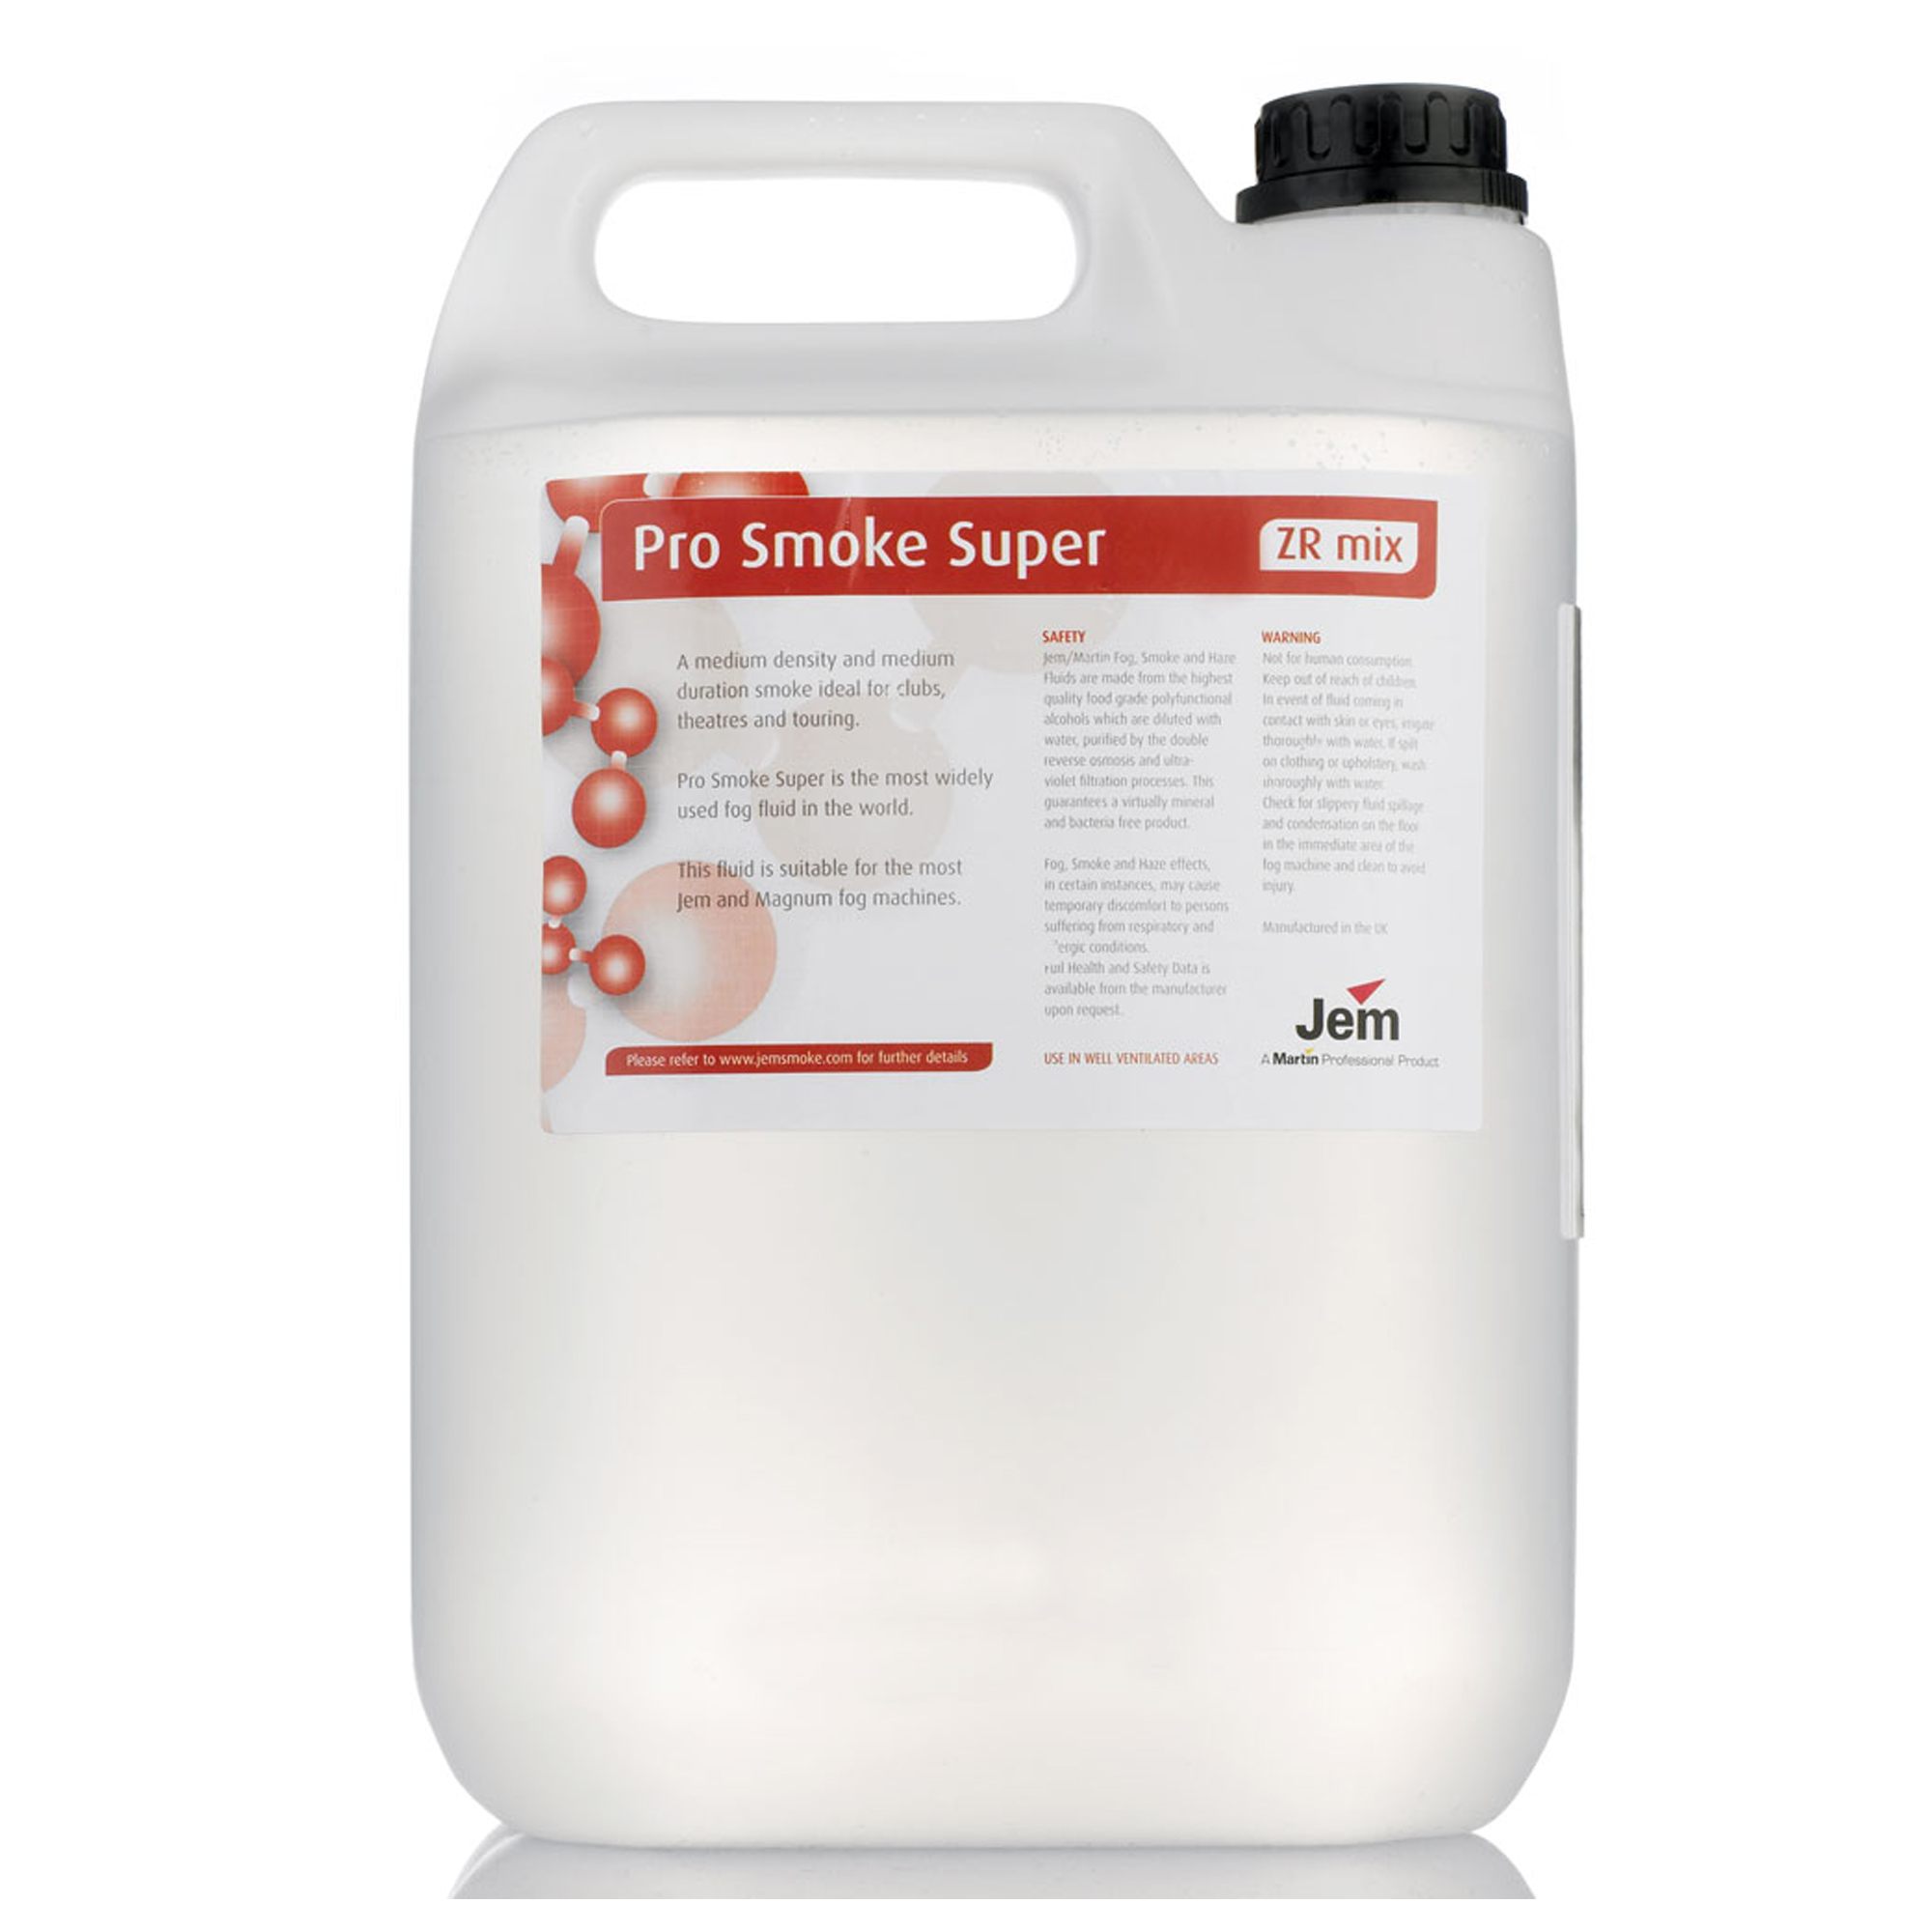 Pro Smoke Super (ZR mix) Fluid